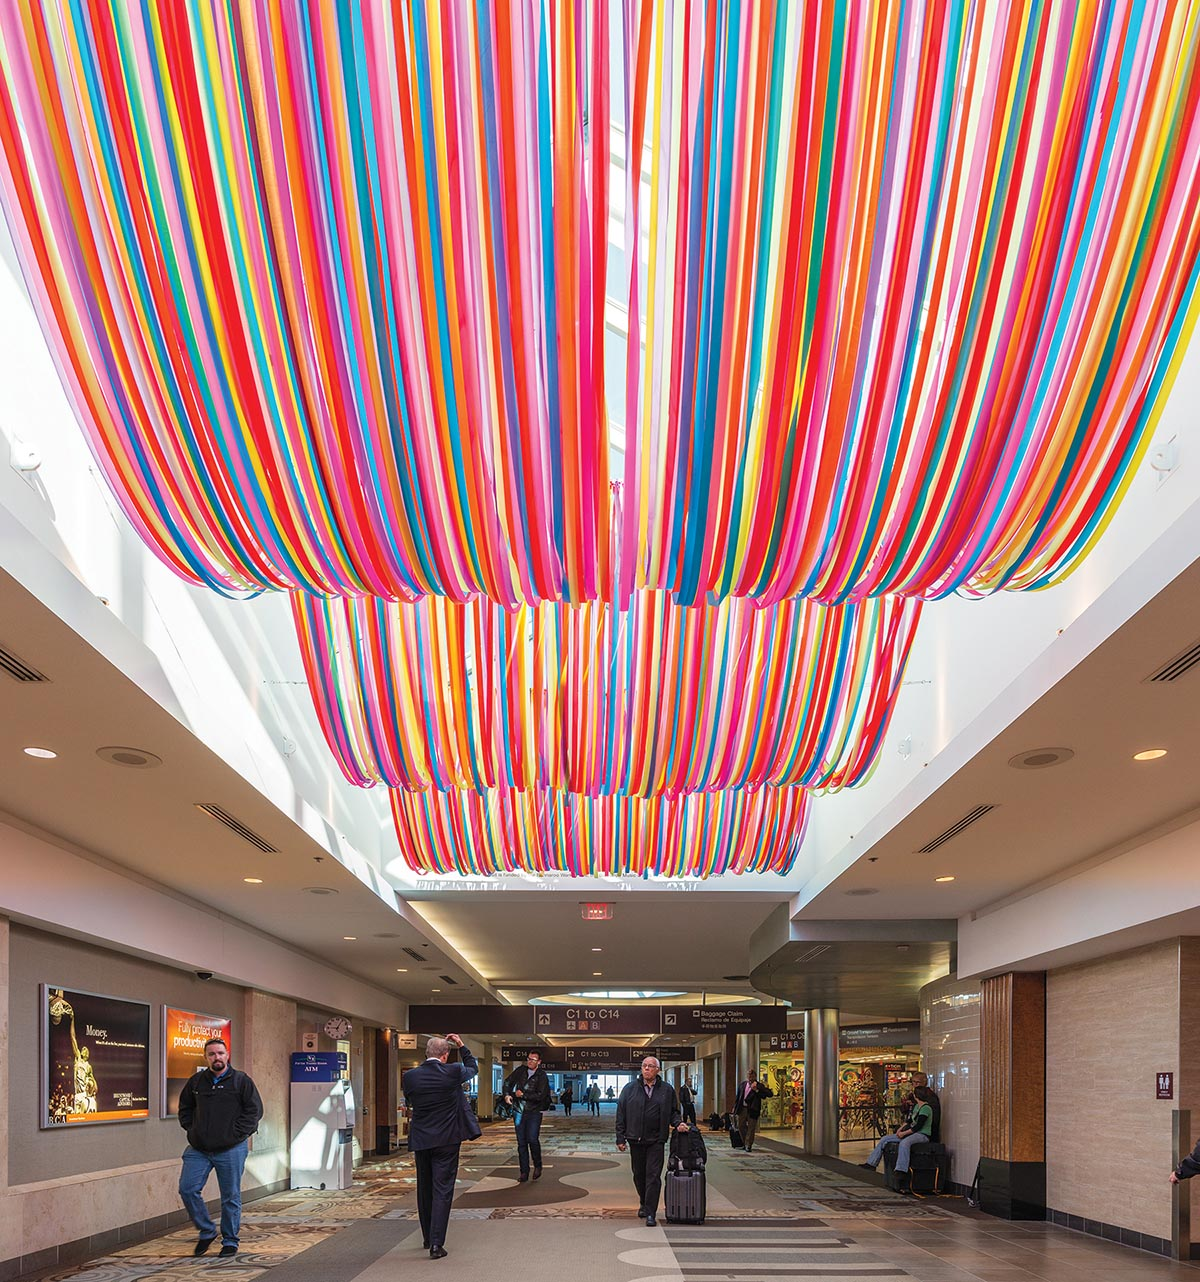 Art Reaches New Heights At The Nashville Airport